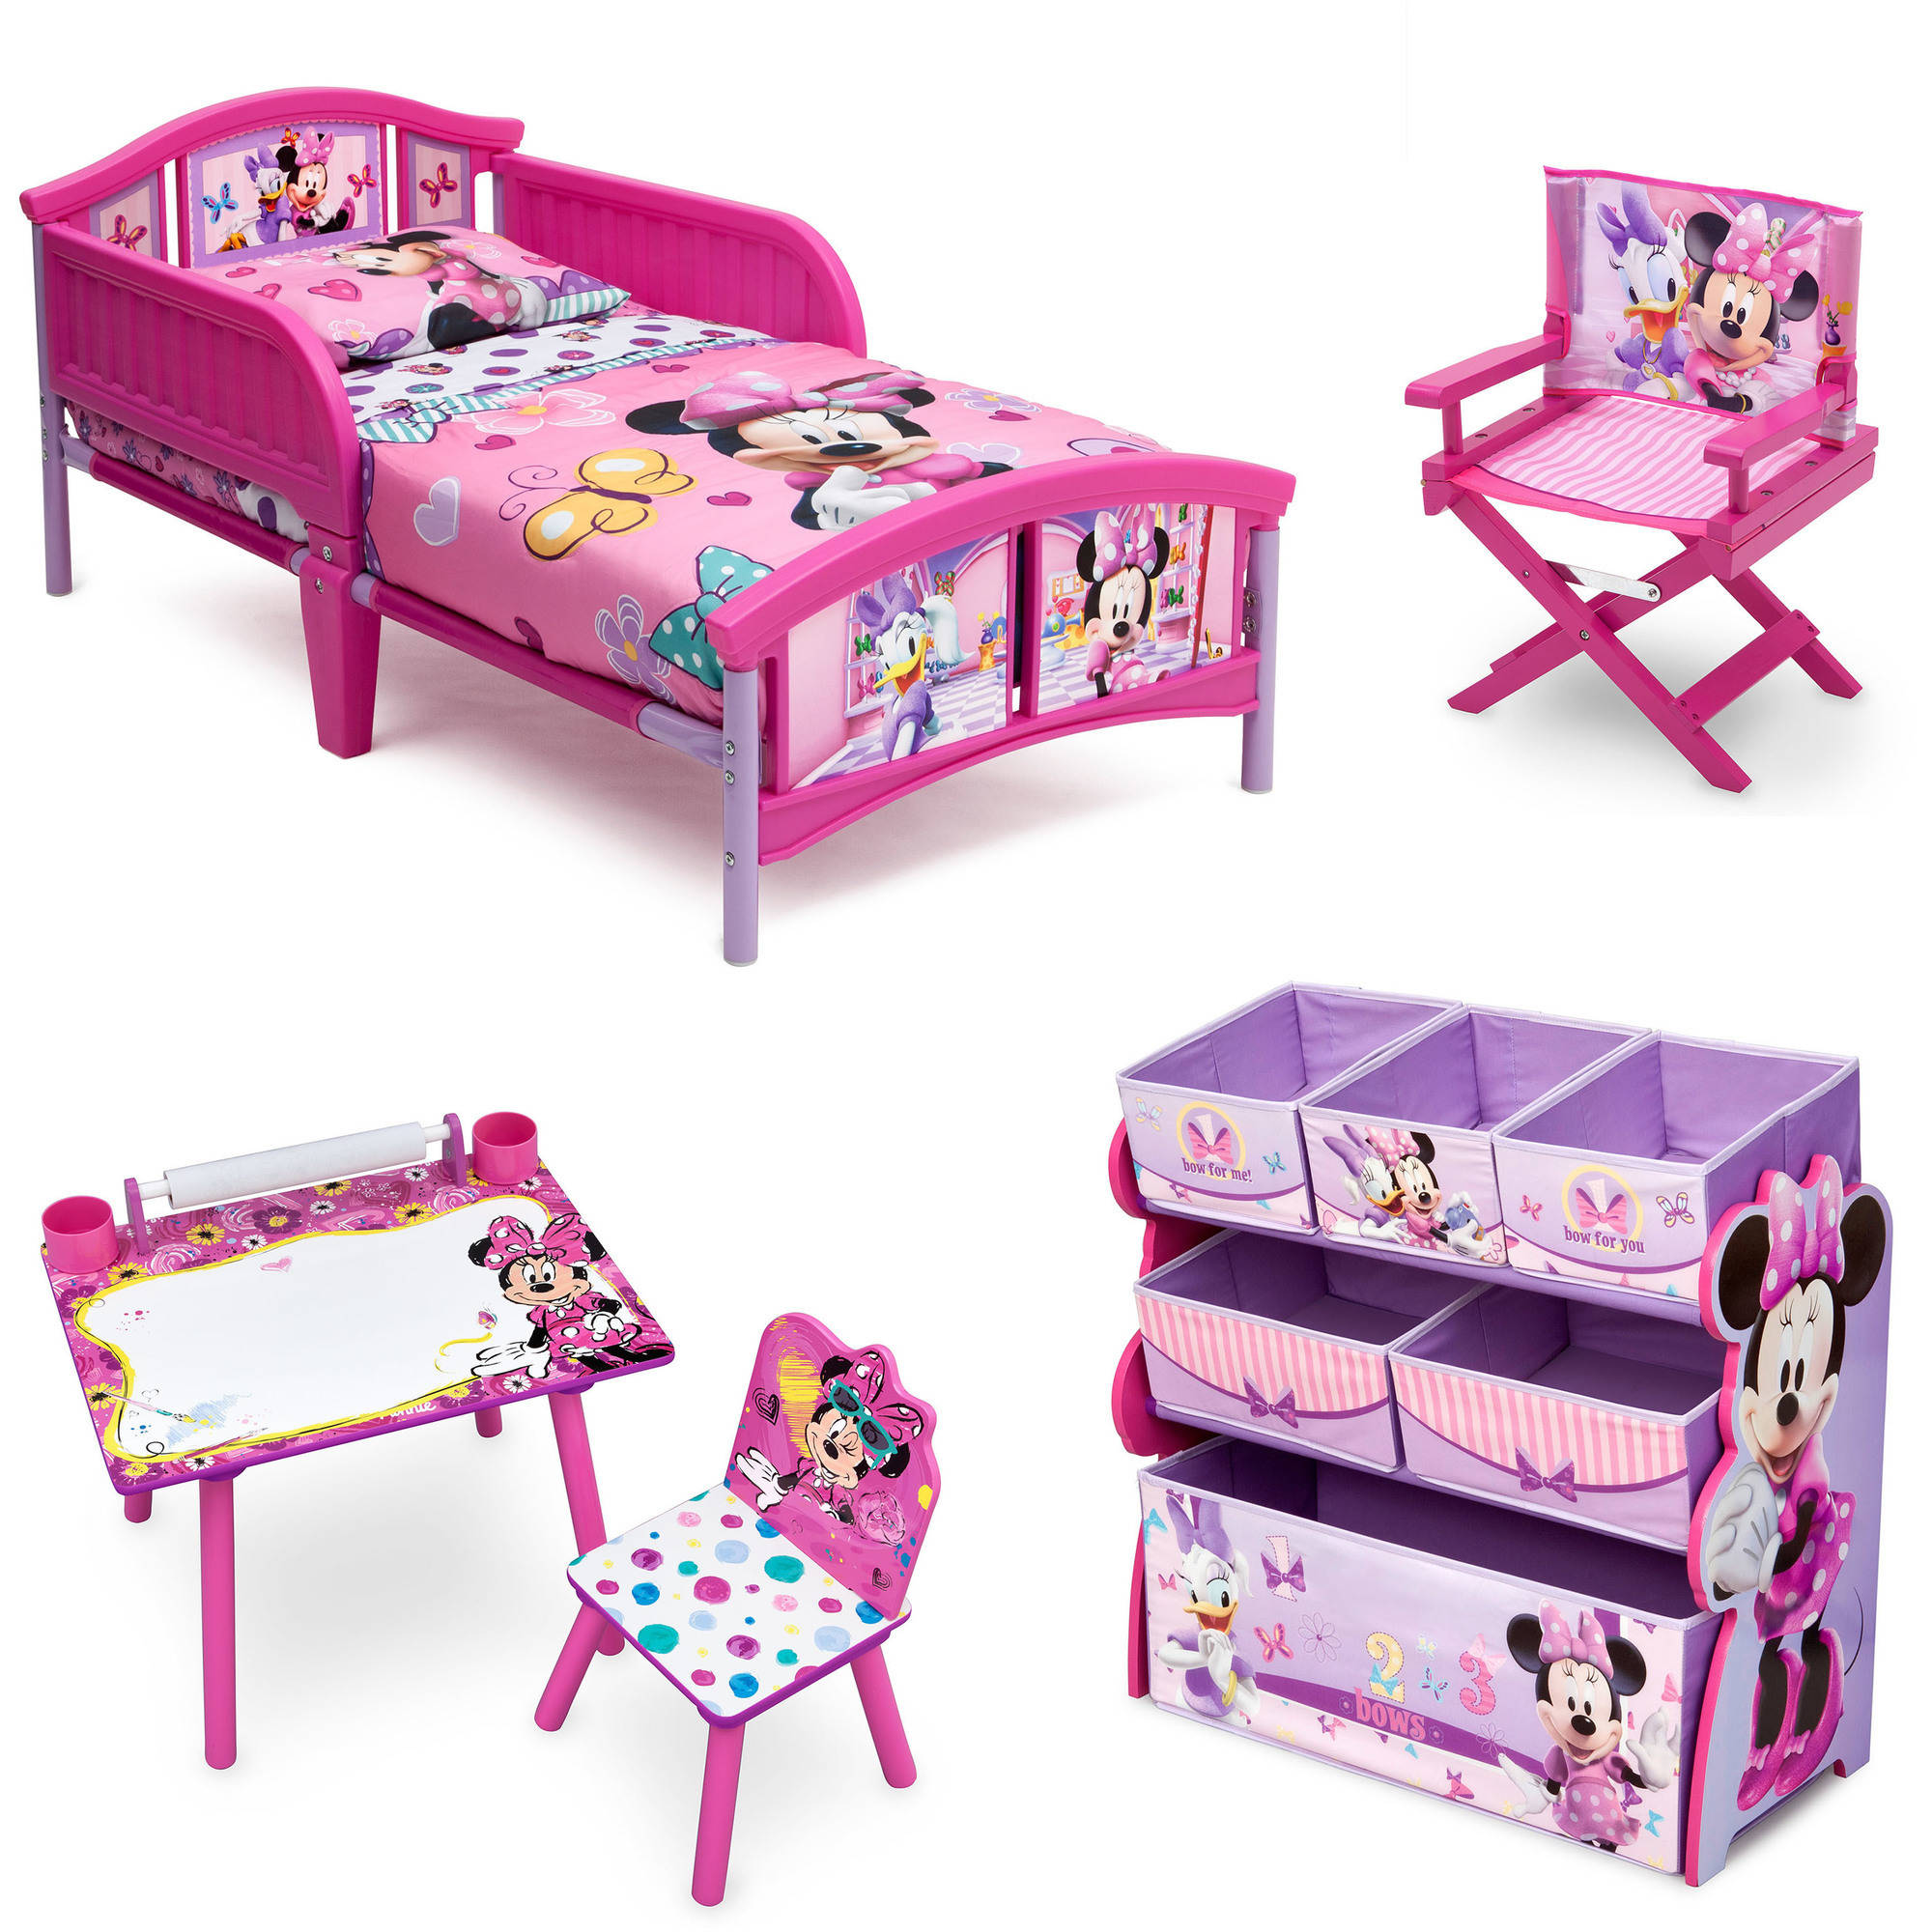 Disney Minnie Mouse Room-in-a-Box with Bonus Chair